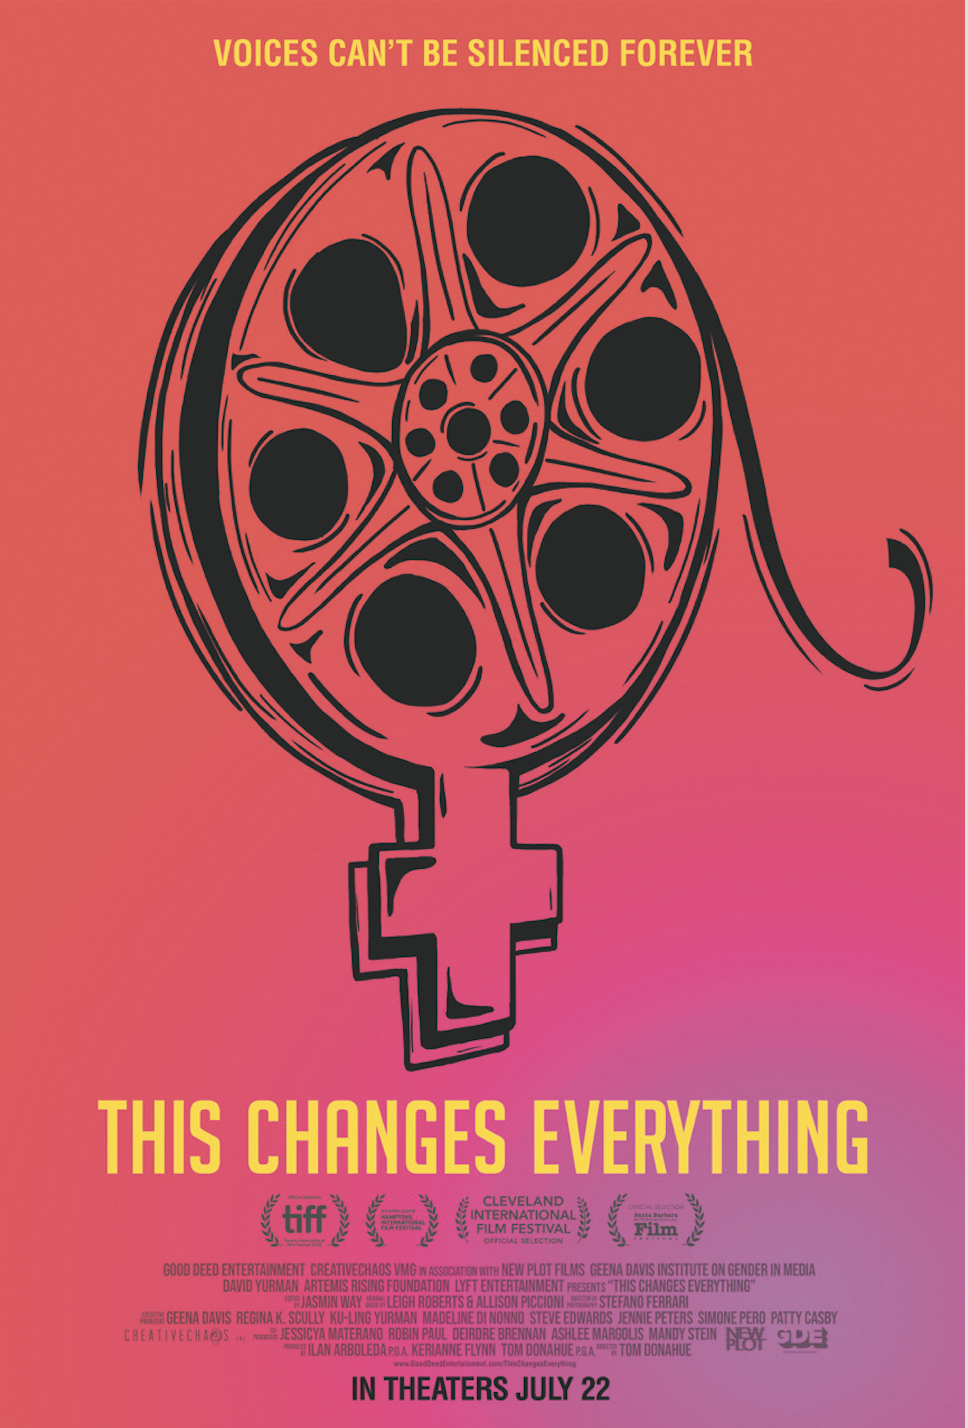 This Changes Everything   (2019) dir. Tom Donahue Rated: PG-13 image: ©2019  Good Deed Entertainment